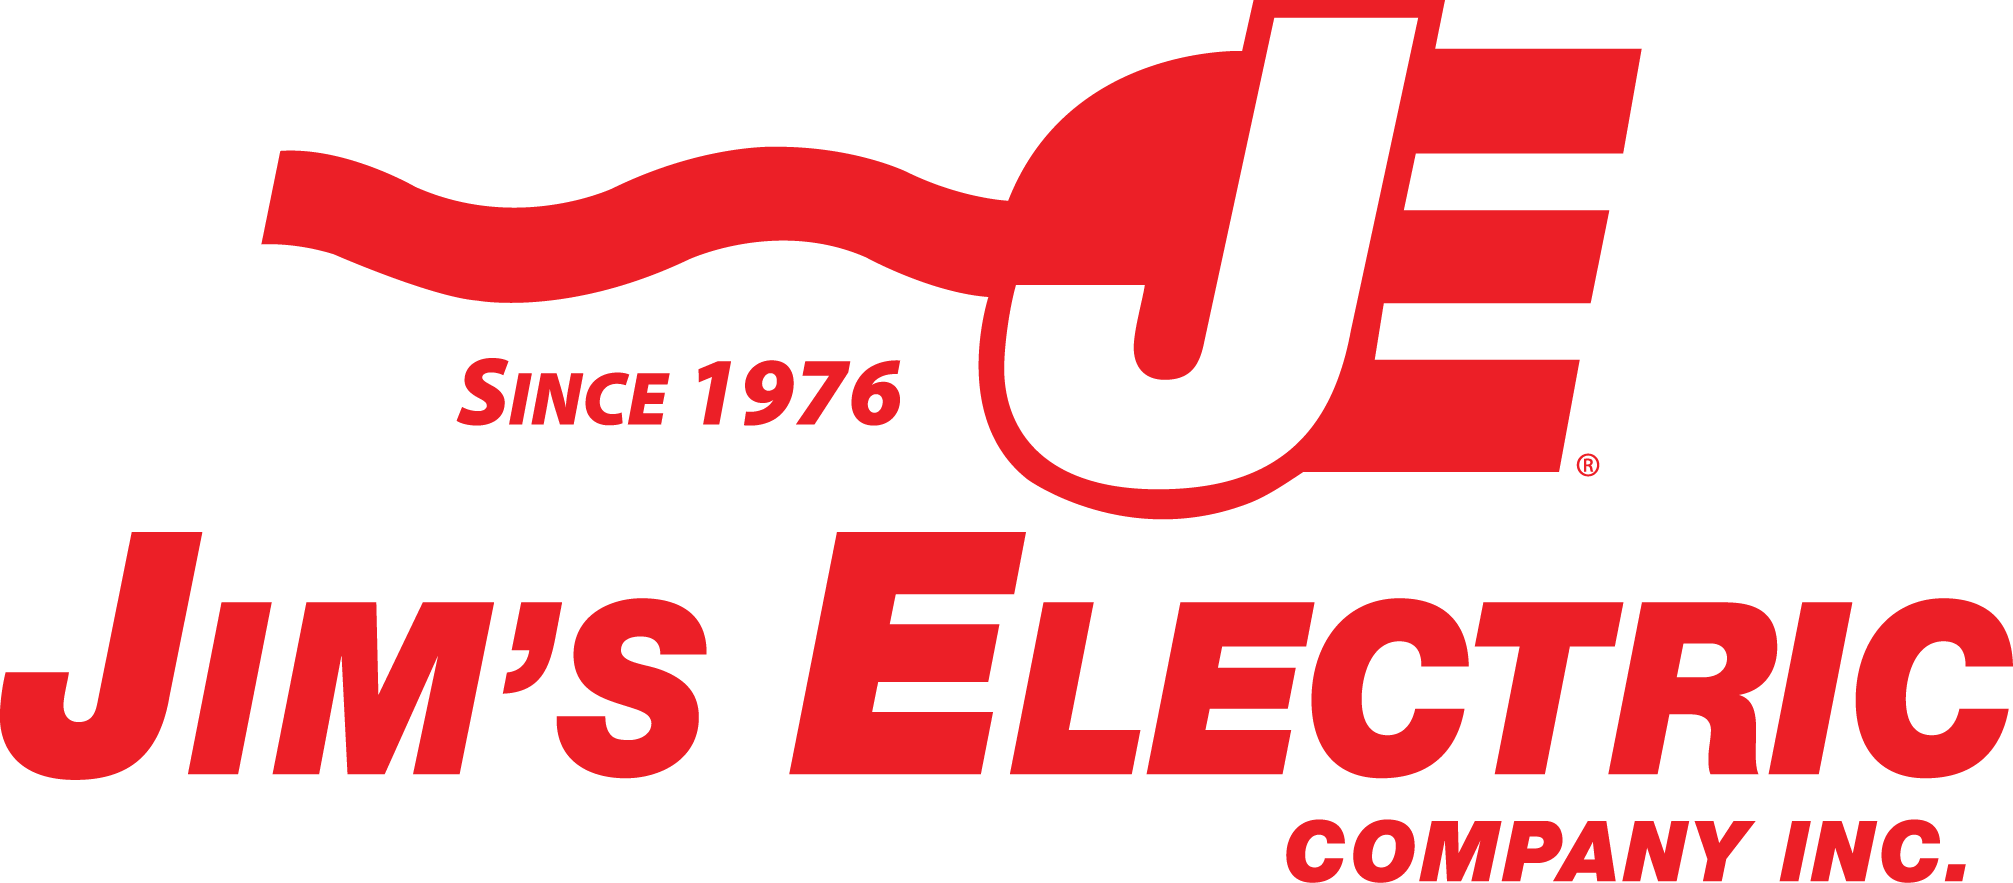 Jim's Electric Company Inc.